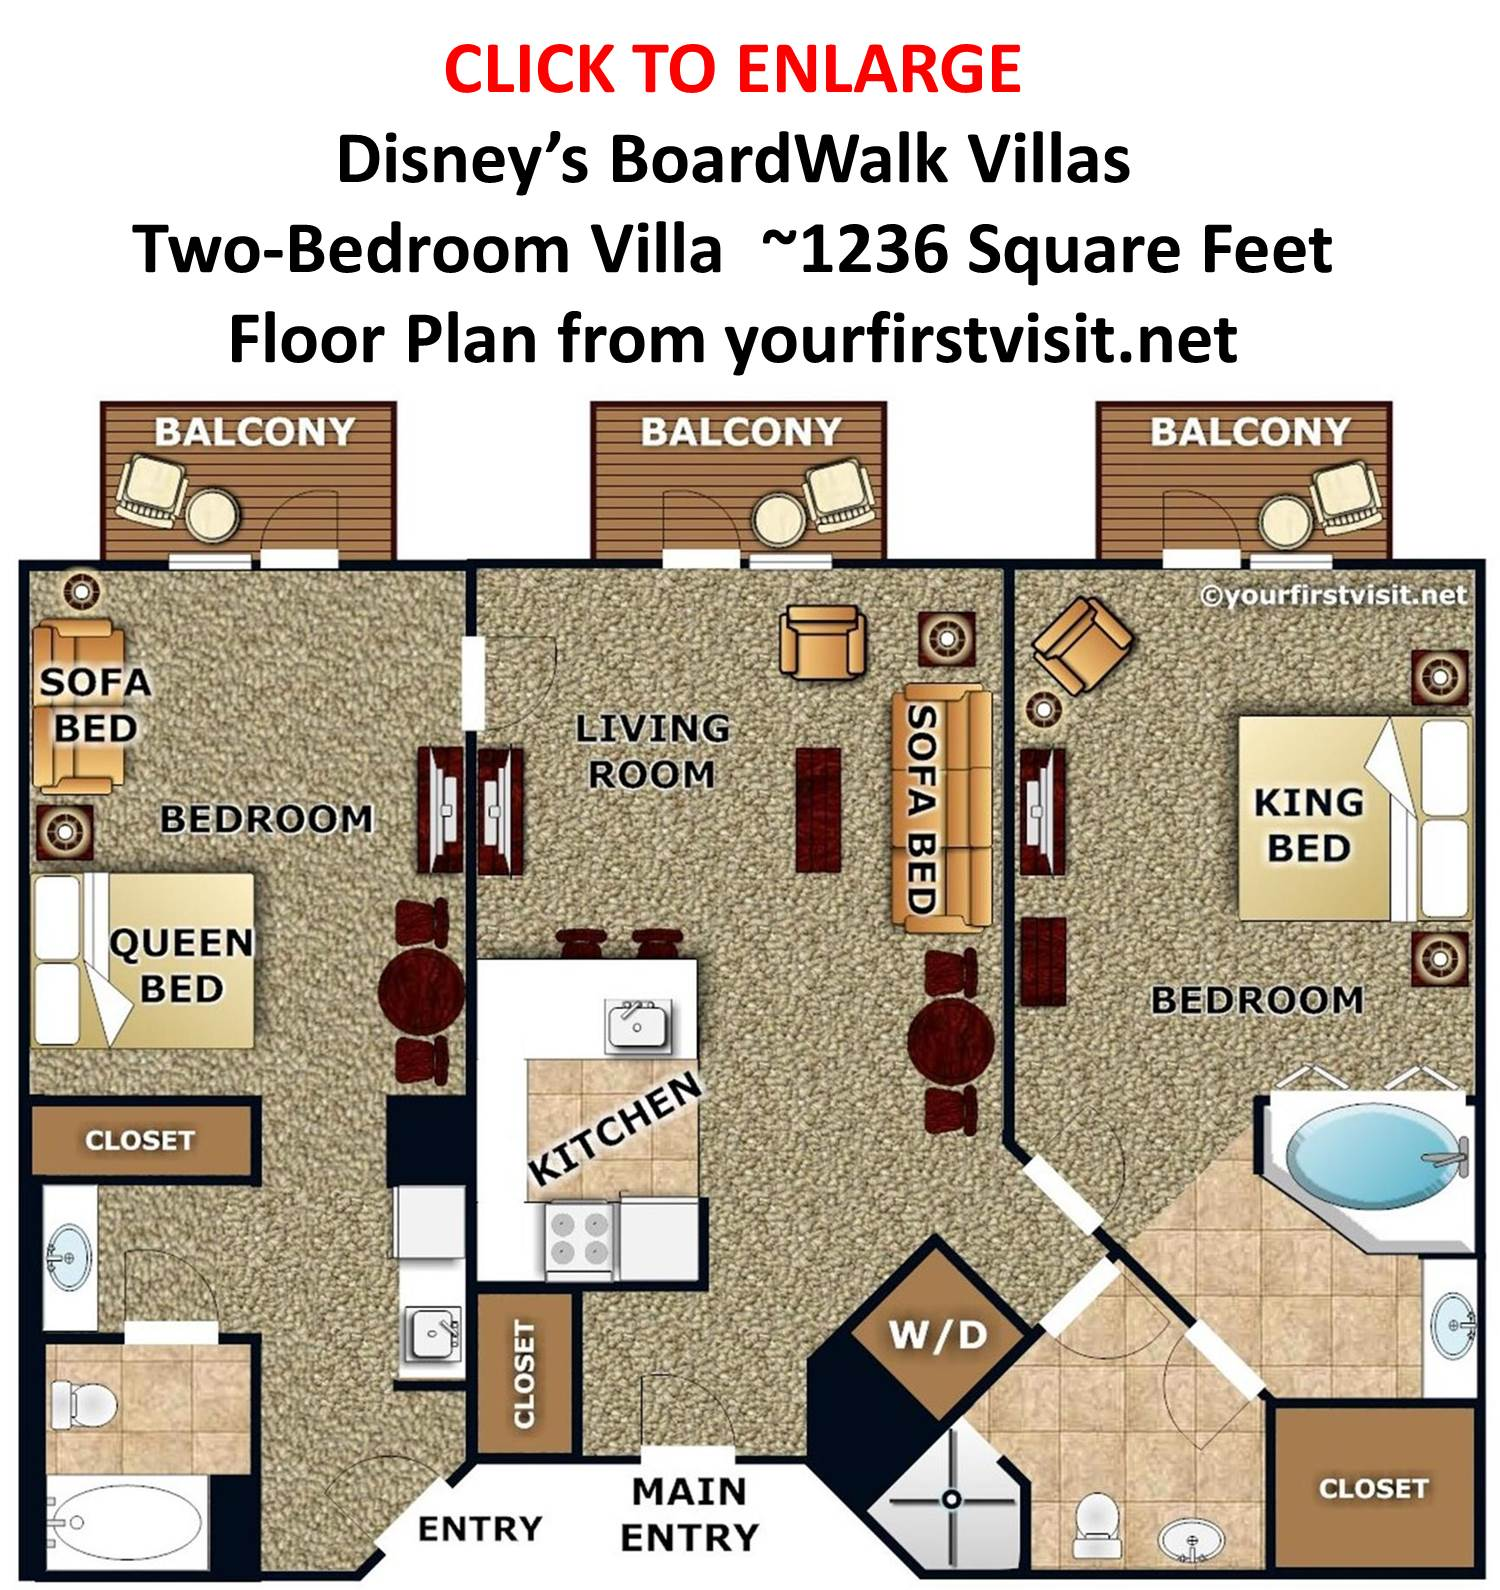 Review disney 39 s boardwalk villas - 2 bedroom villas near disney world ...